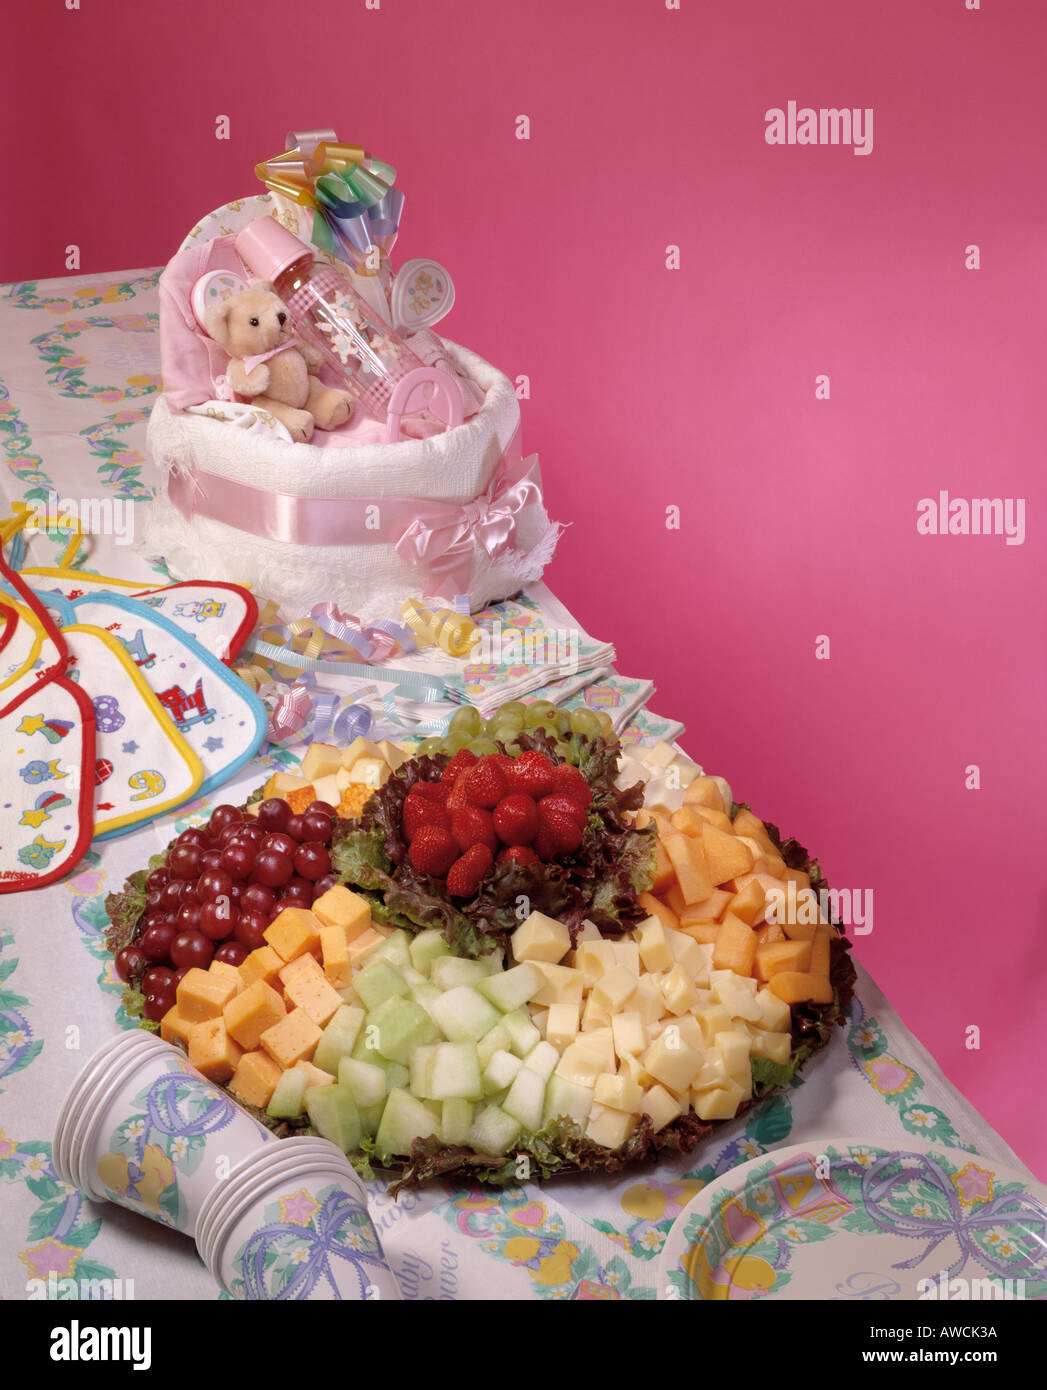 Baby Shower Party Food Assortment Gifts Cheese Fresh Fruit Platter